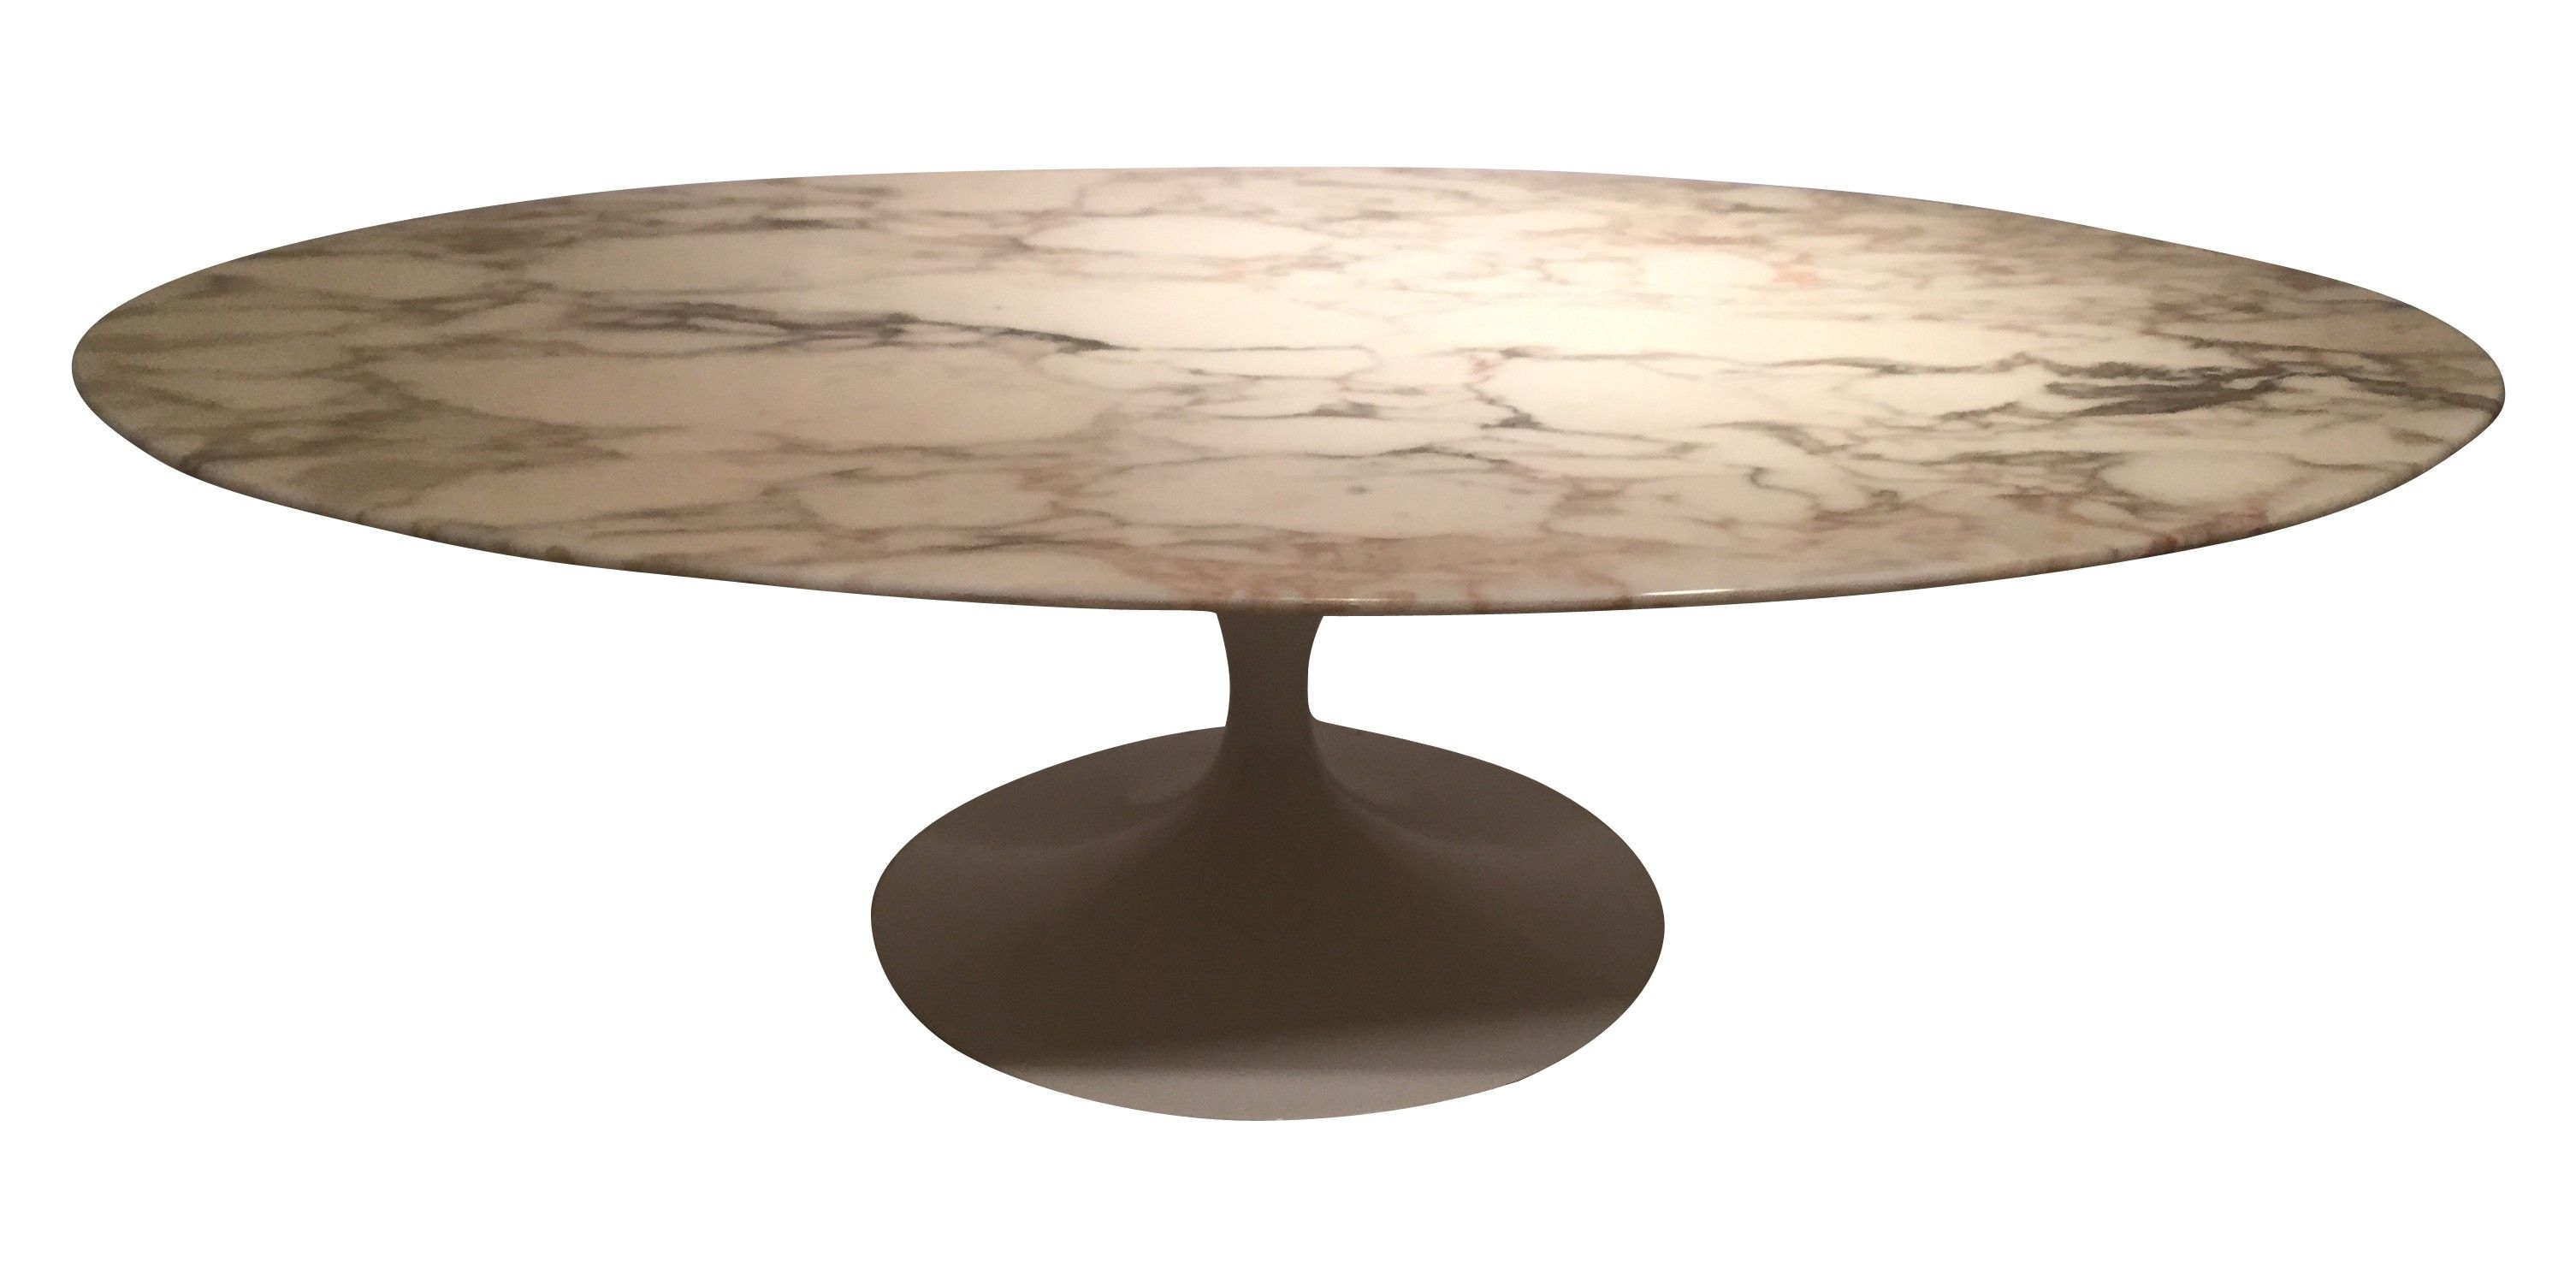 Grande table basse ovale en marbre eero saarinen ann es - Table basse design ovale ...